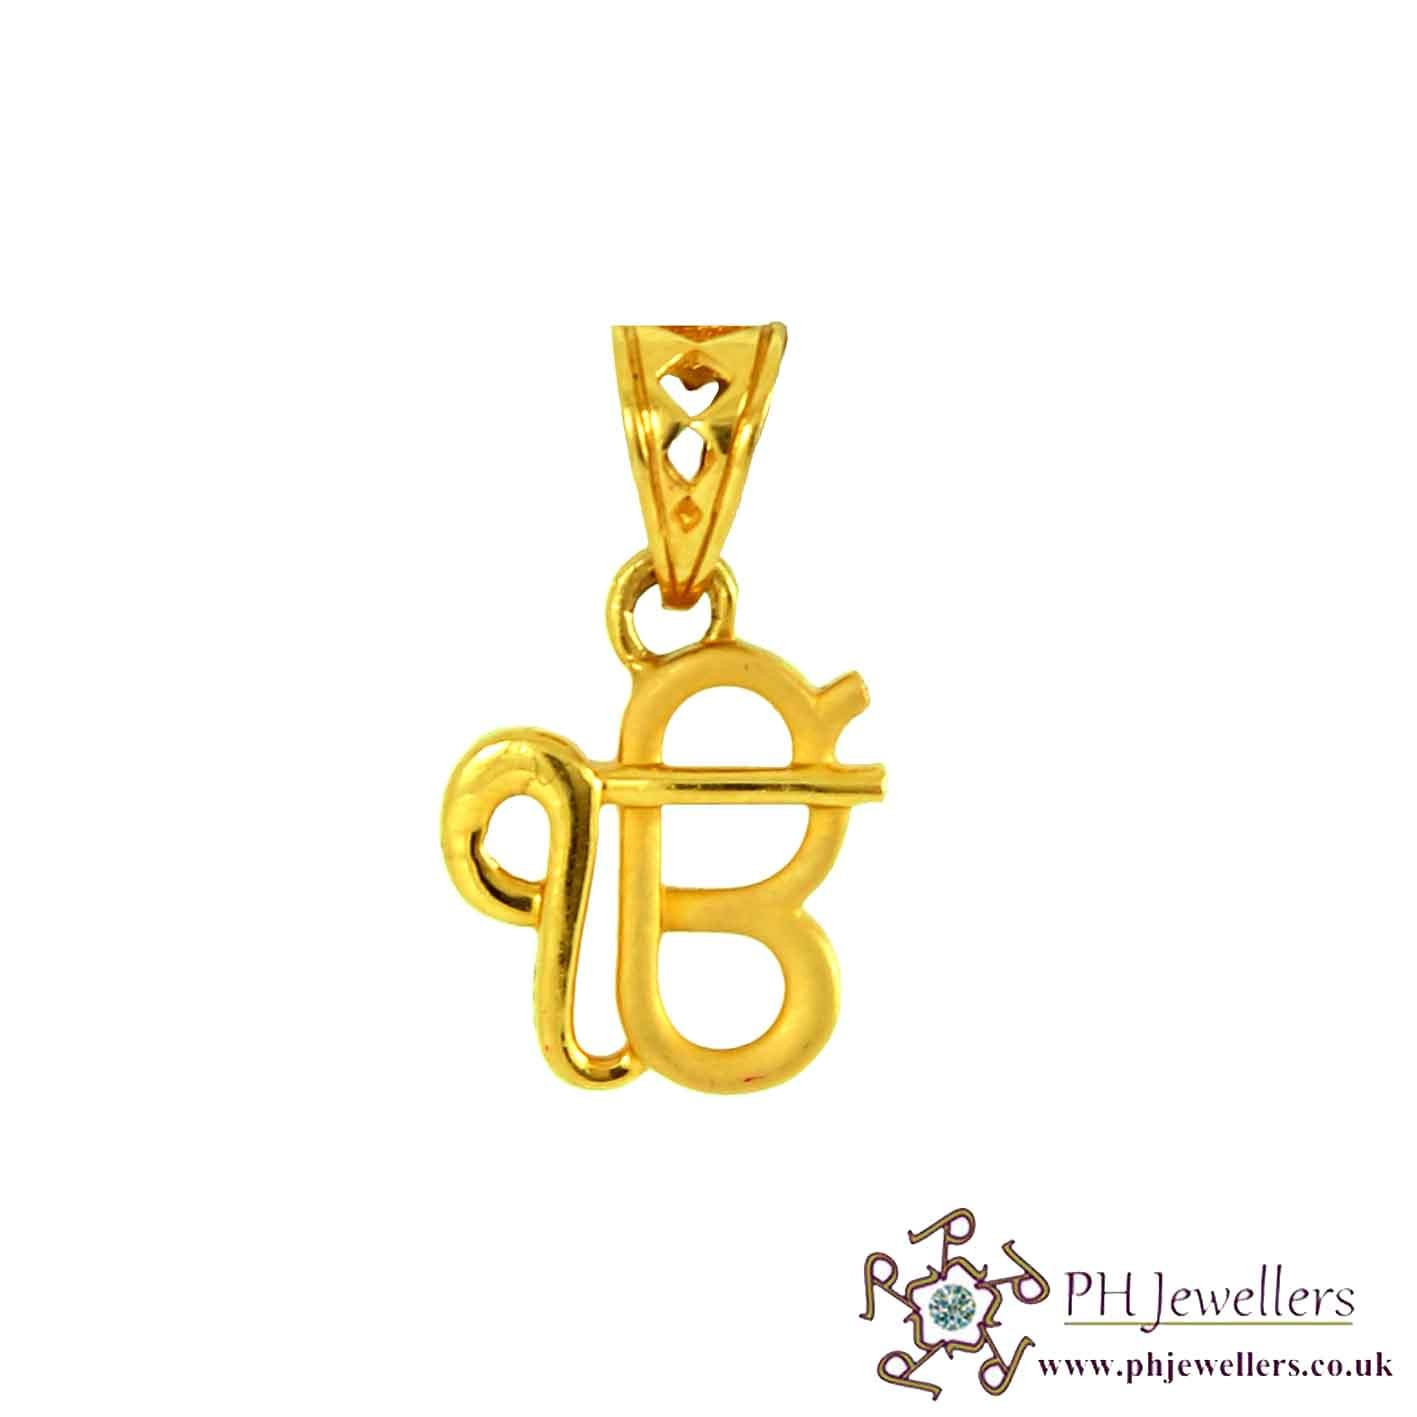 Online gold jewellery gold jewellery religious 22ct 916 hallmark online gold jewellery gold jewellery religious 22ct 916 hallmark yellow gold ek onkar pendant rp43 22 carat gold jewellers aloadofball Images